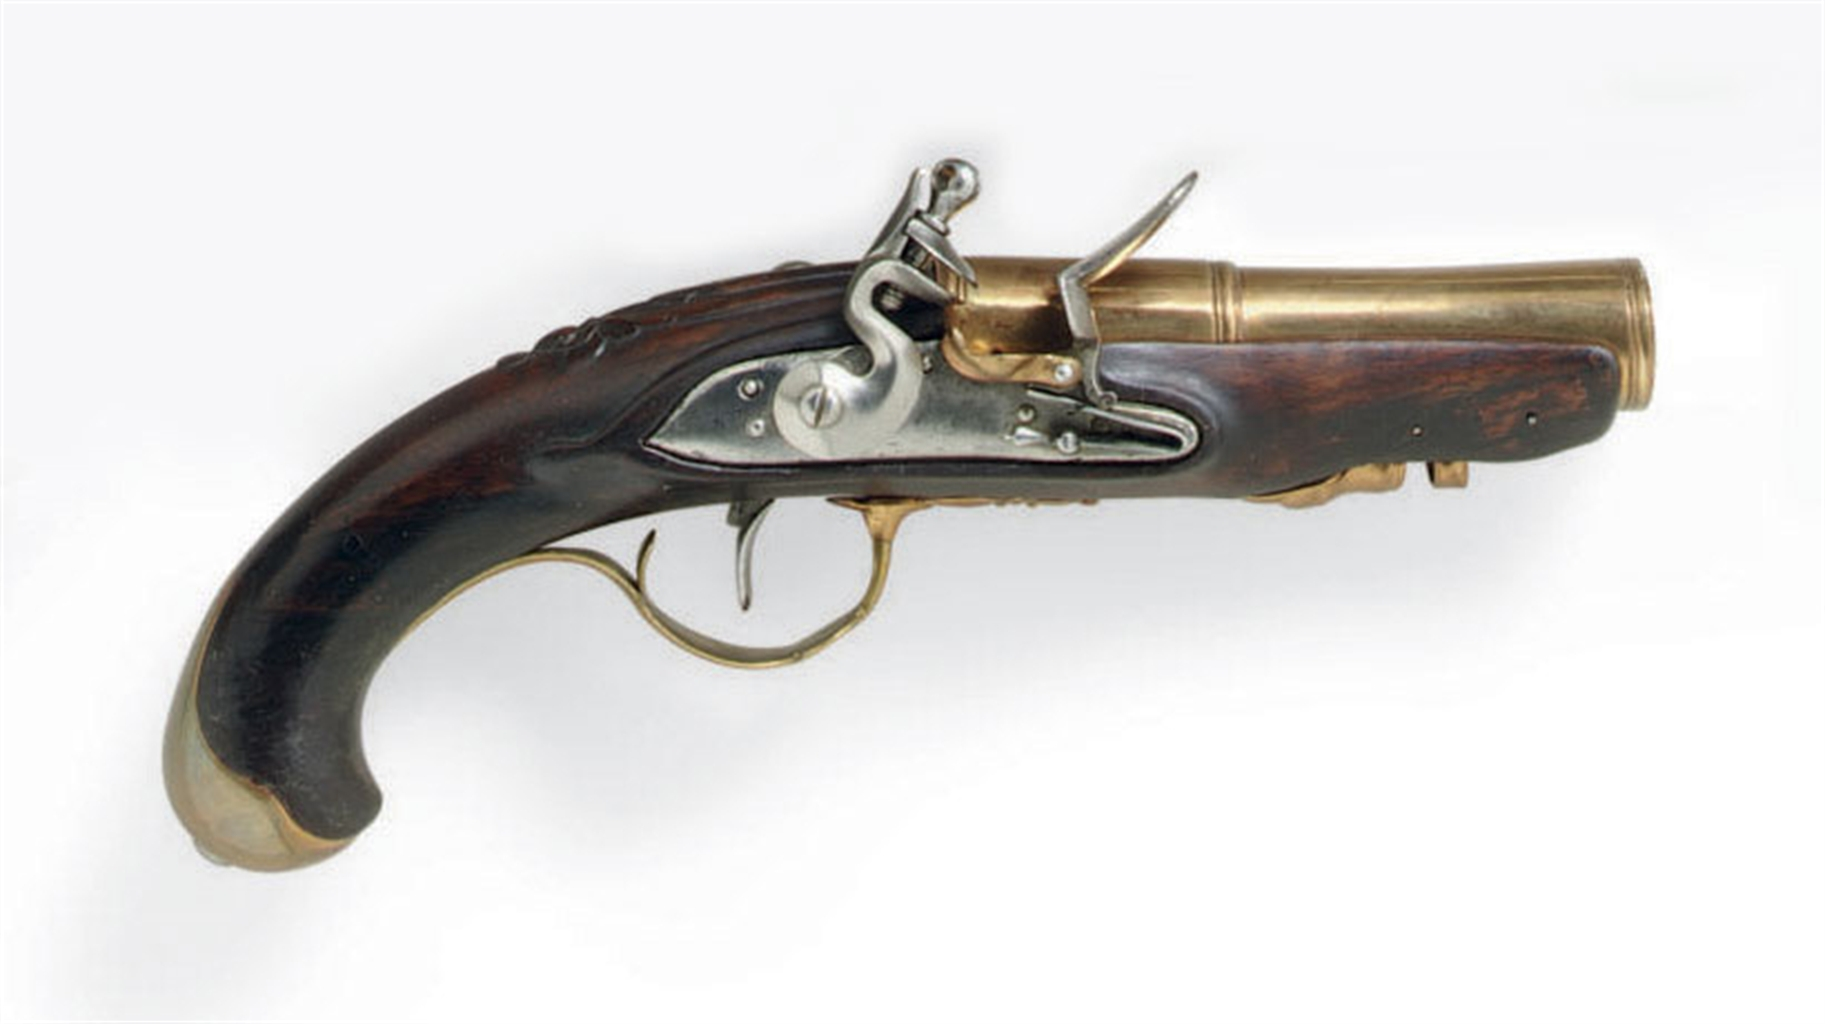 """I Have This Old Gun"" - Blunderbuss - Gun Valuation - YouTube 